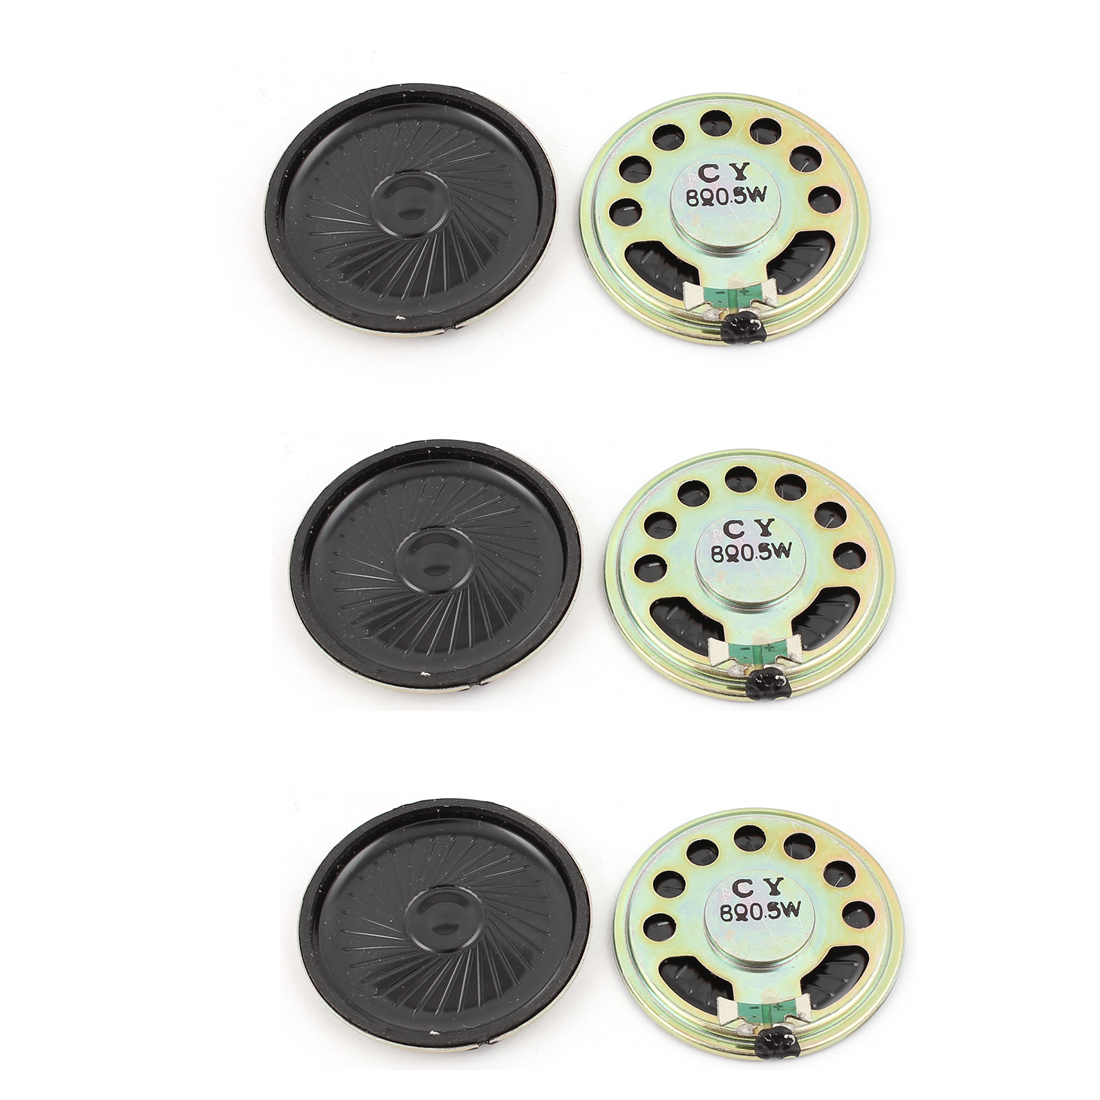 0.5W 45mm Diameter 8 Ohm Internal Mini Magnet Speaker Loudspeaker 6Pcs